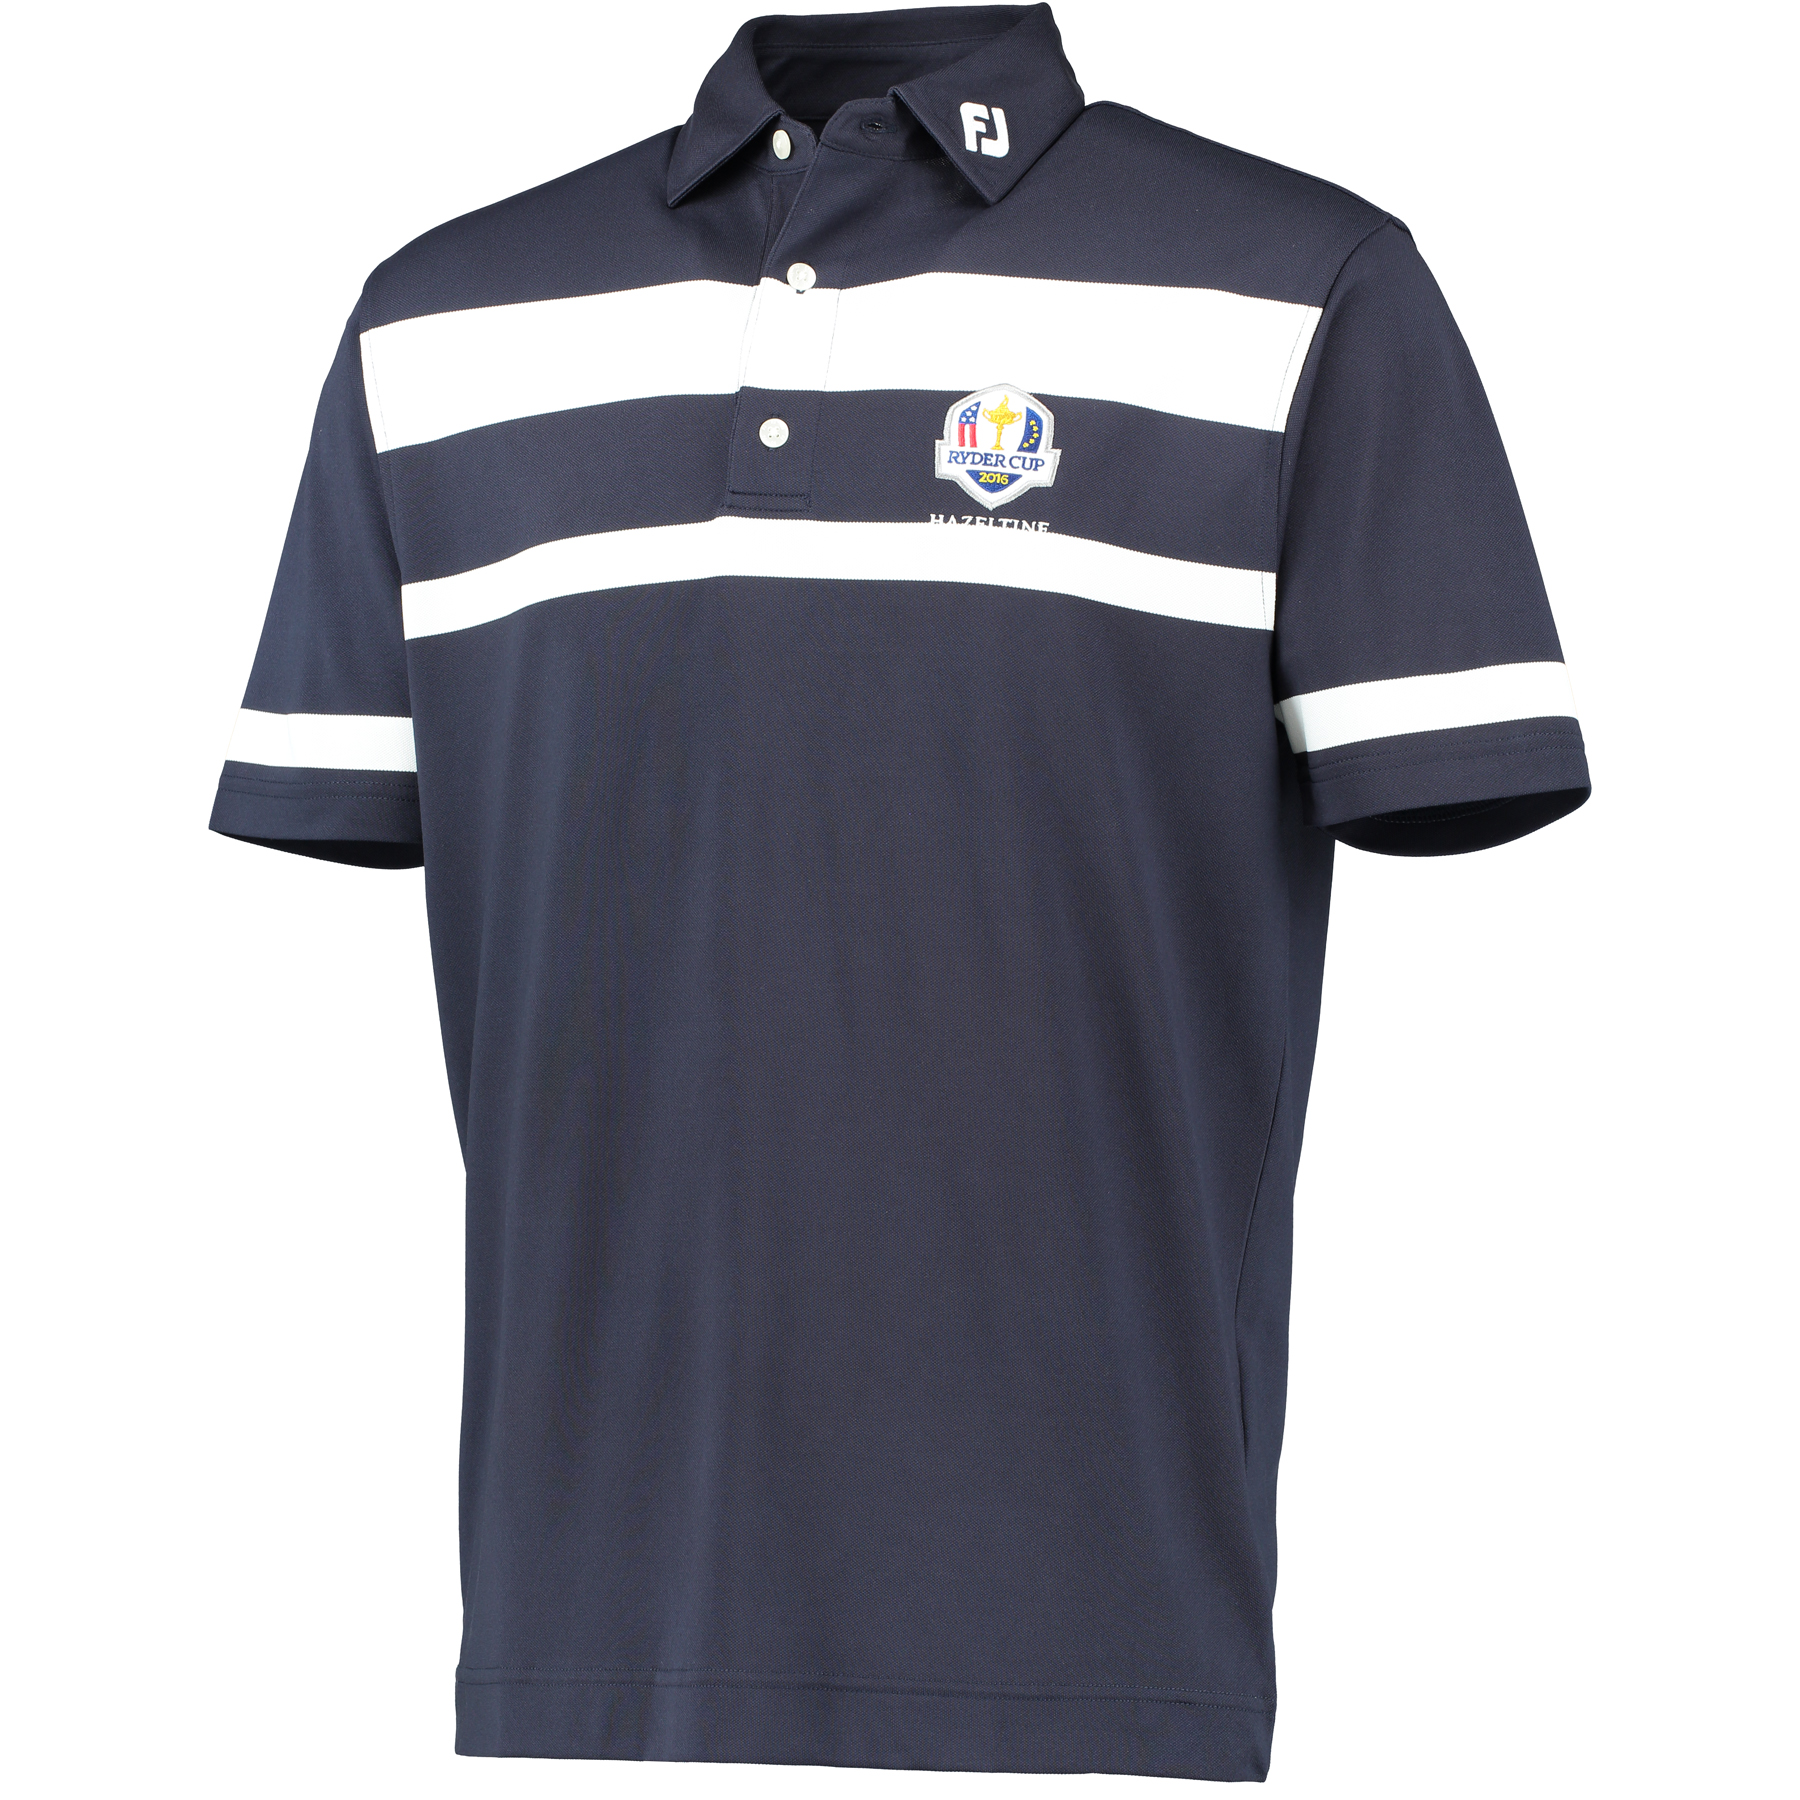 The 2016 Ryder Cup Footjoy Stretch Pique Stripe Polo - Navy/White